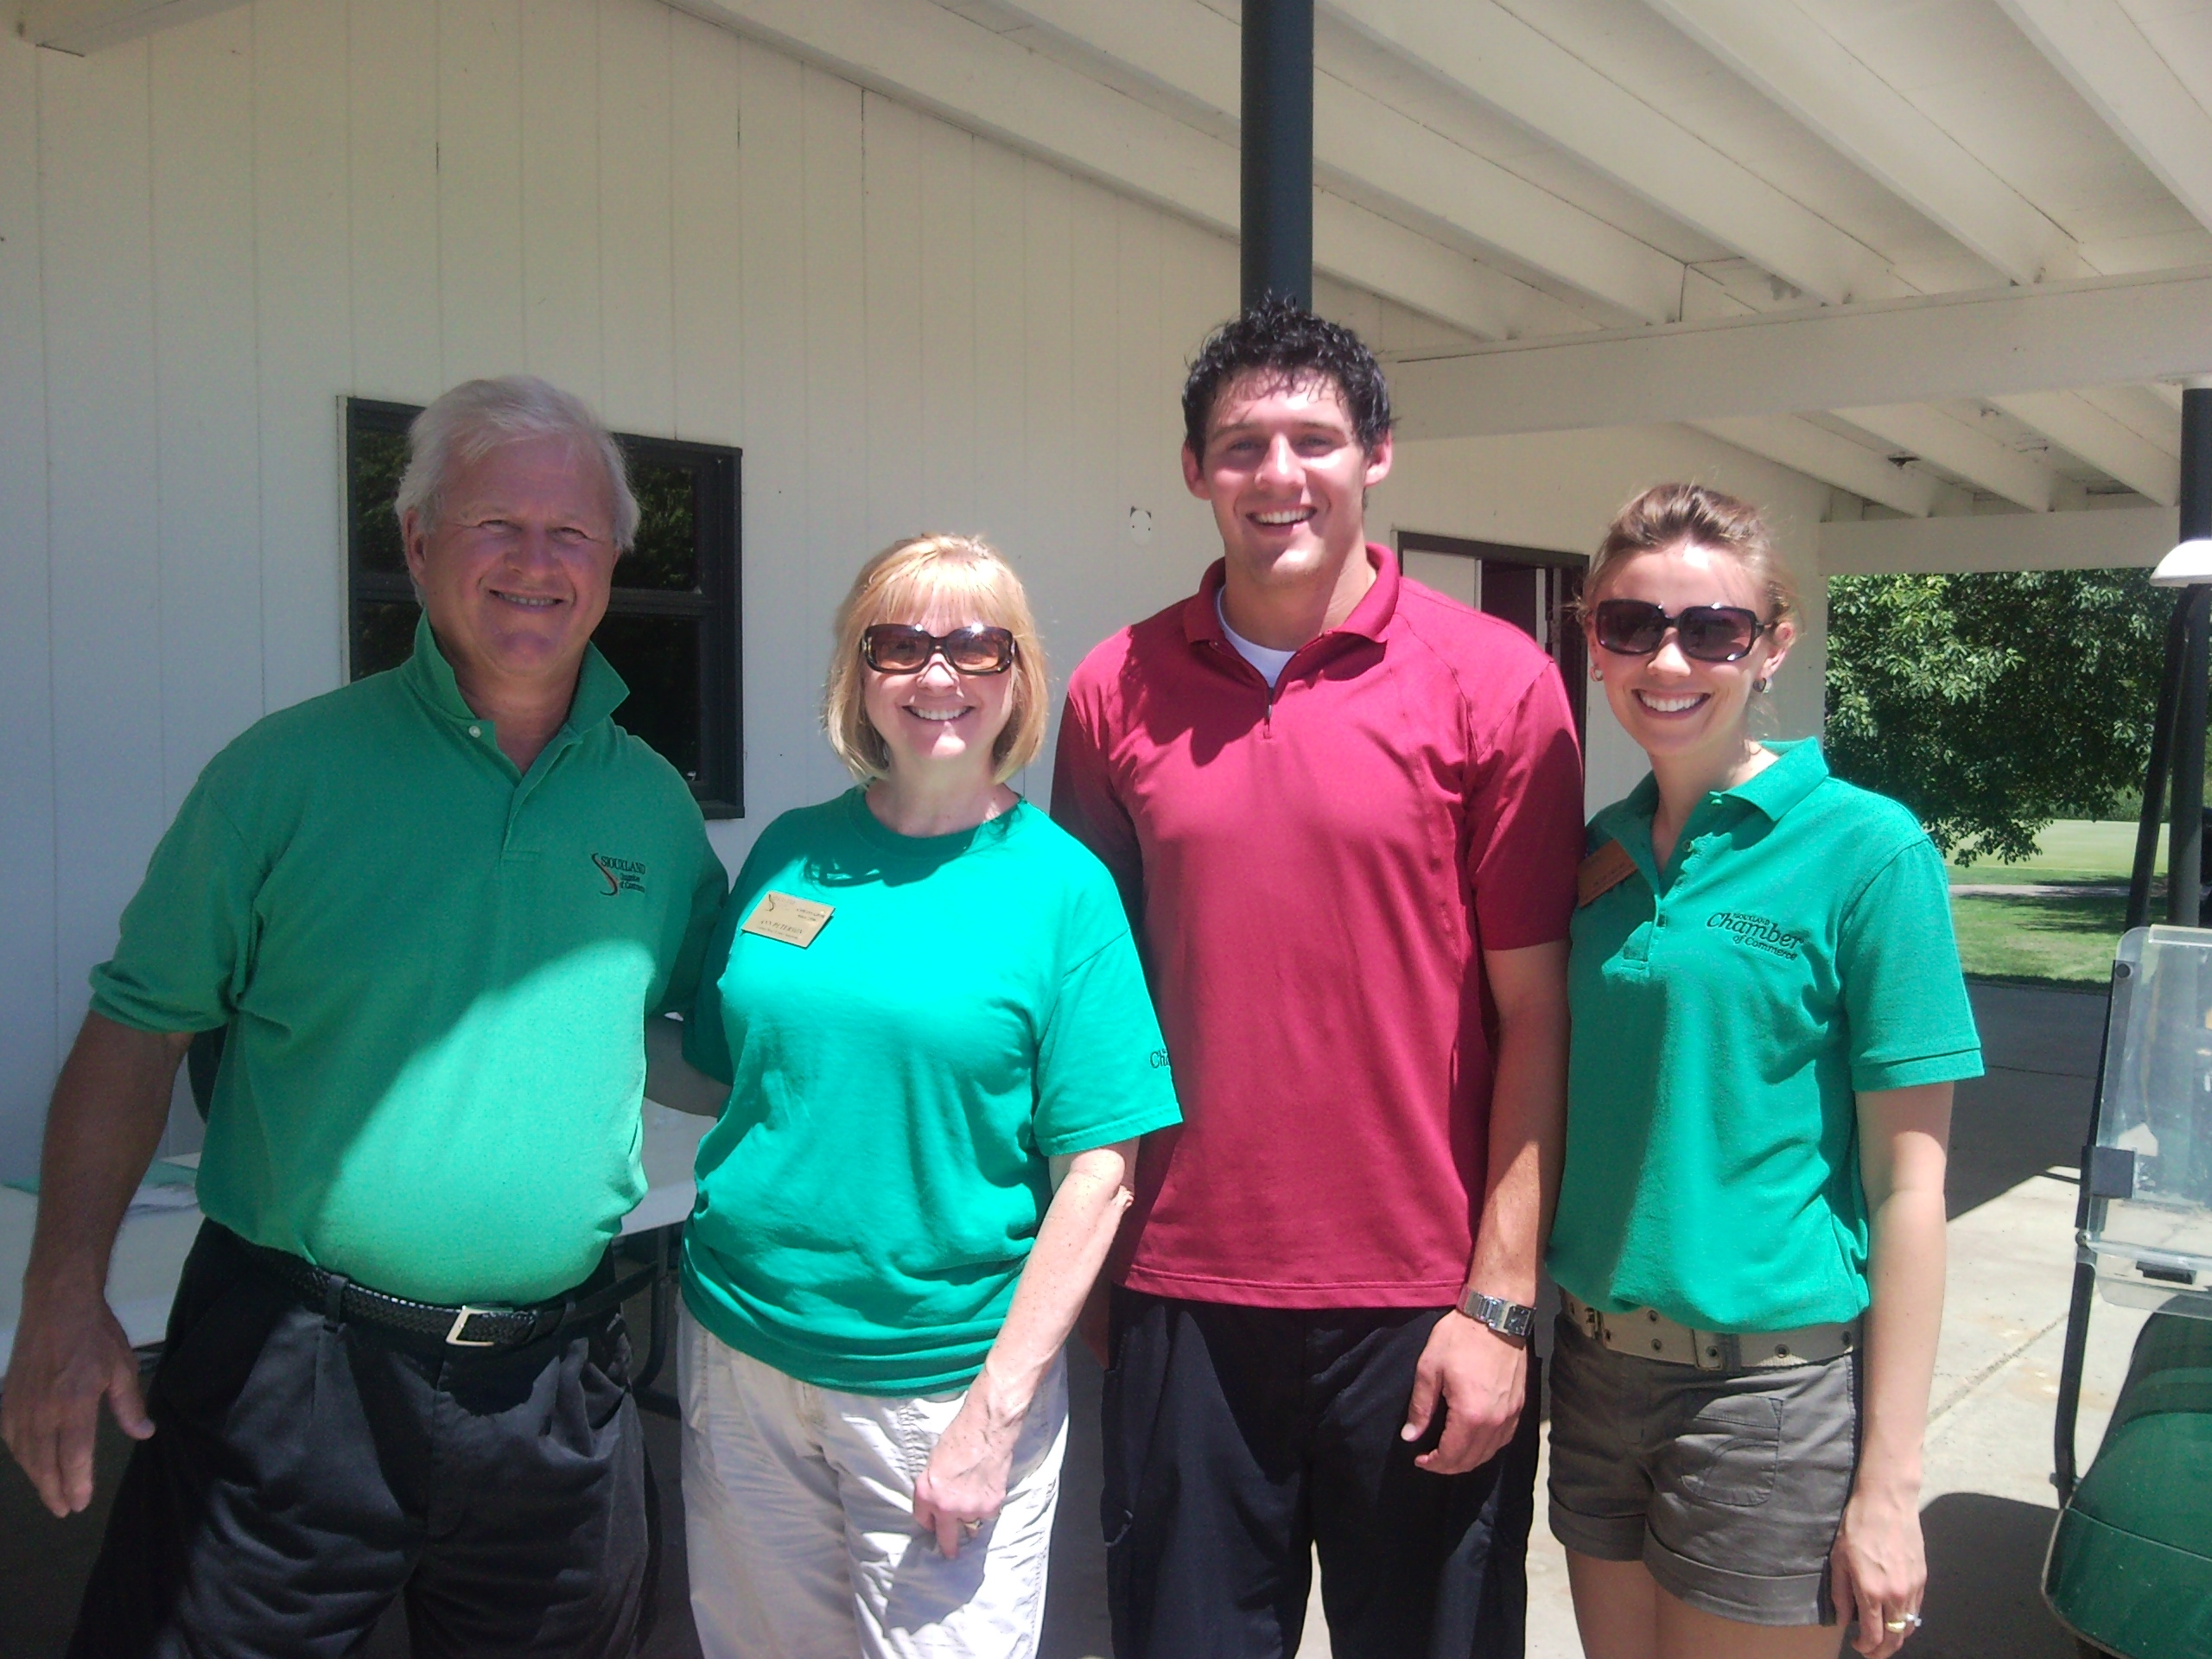 Social Media Intern, Zach Andersen, came out of retirement to help Director of Investor Relations, Beth Trejo, and Chamber Ambassadors at the Golf Classic this past Monday.